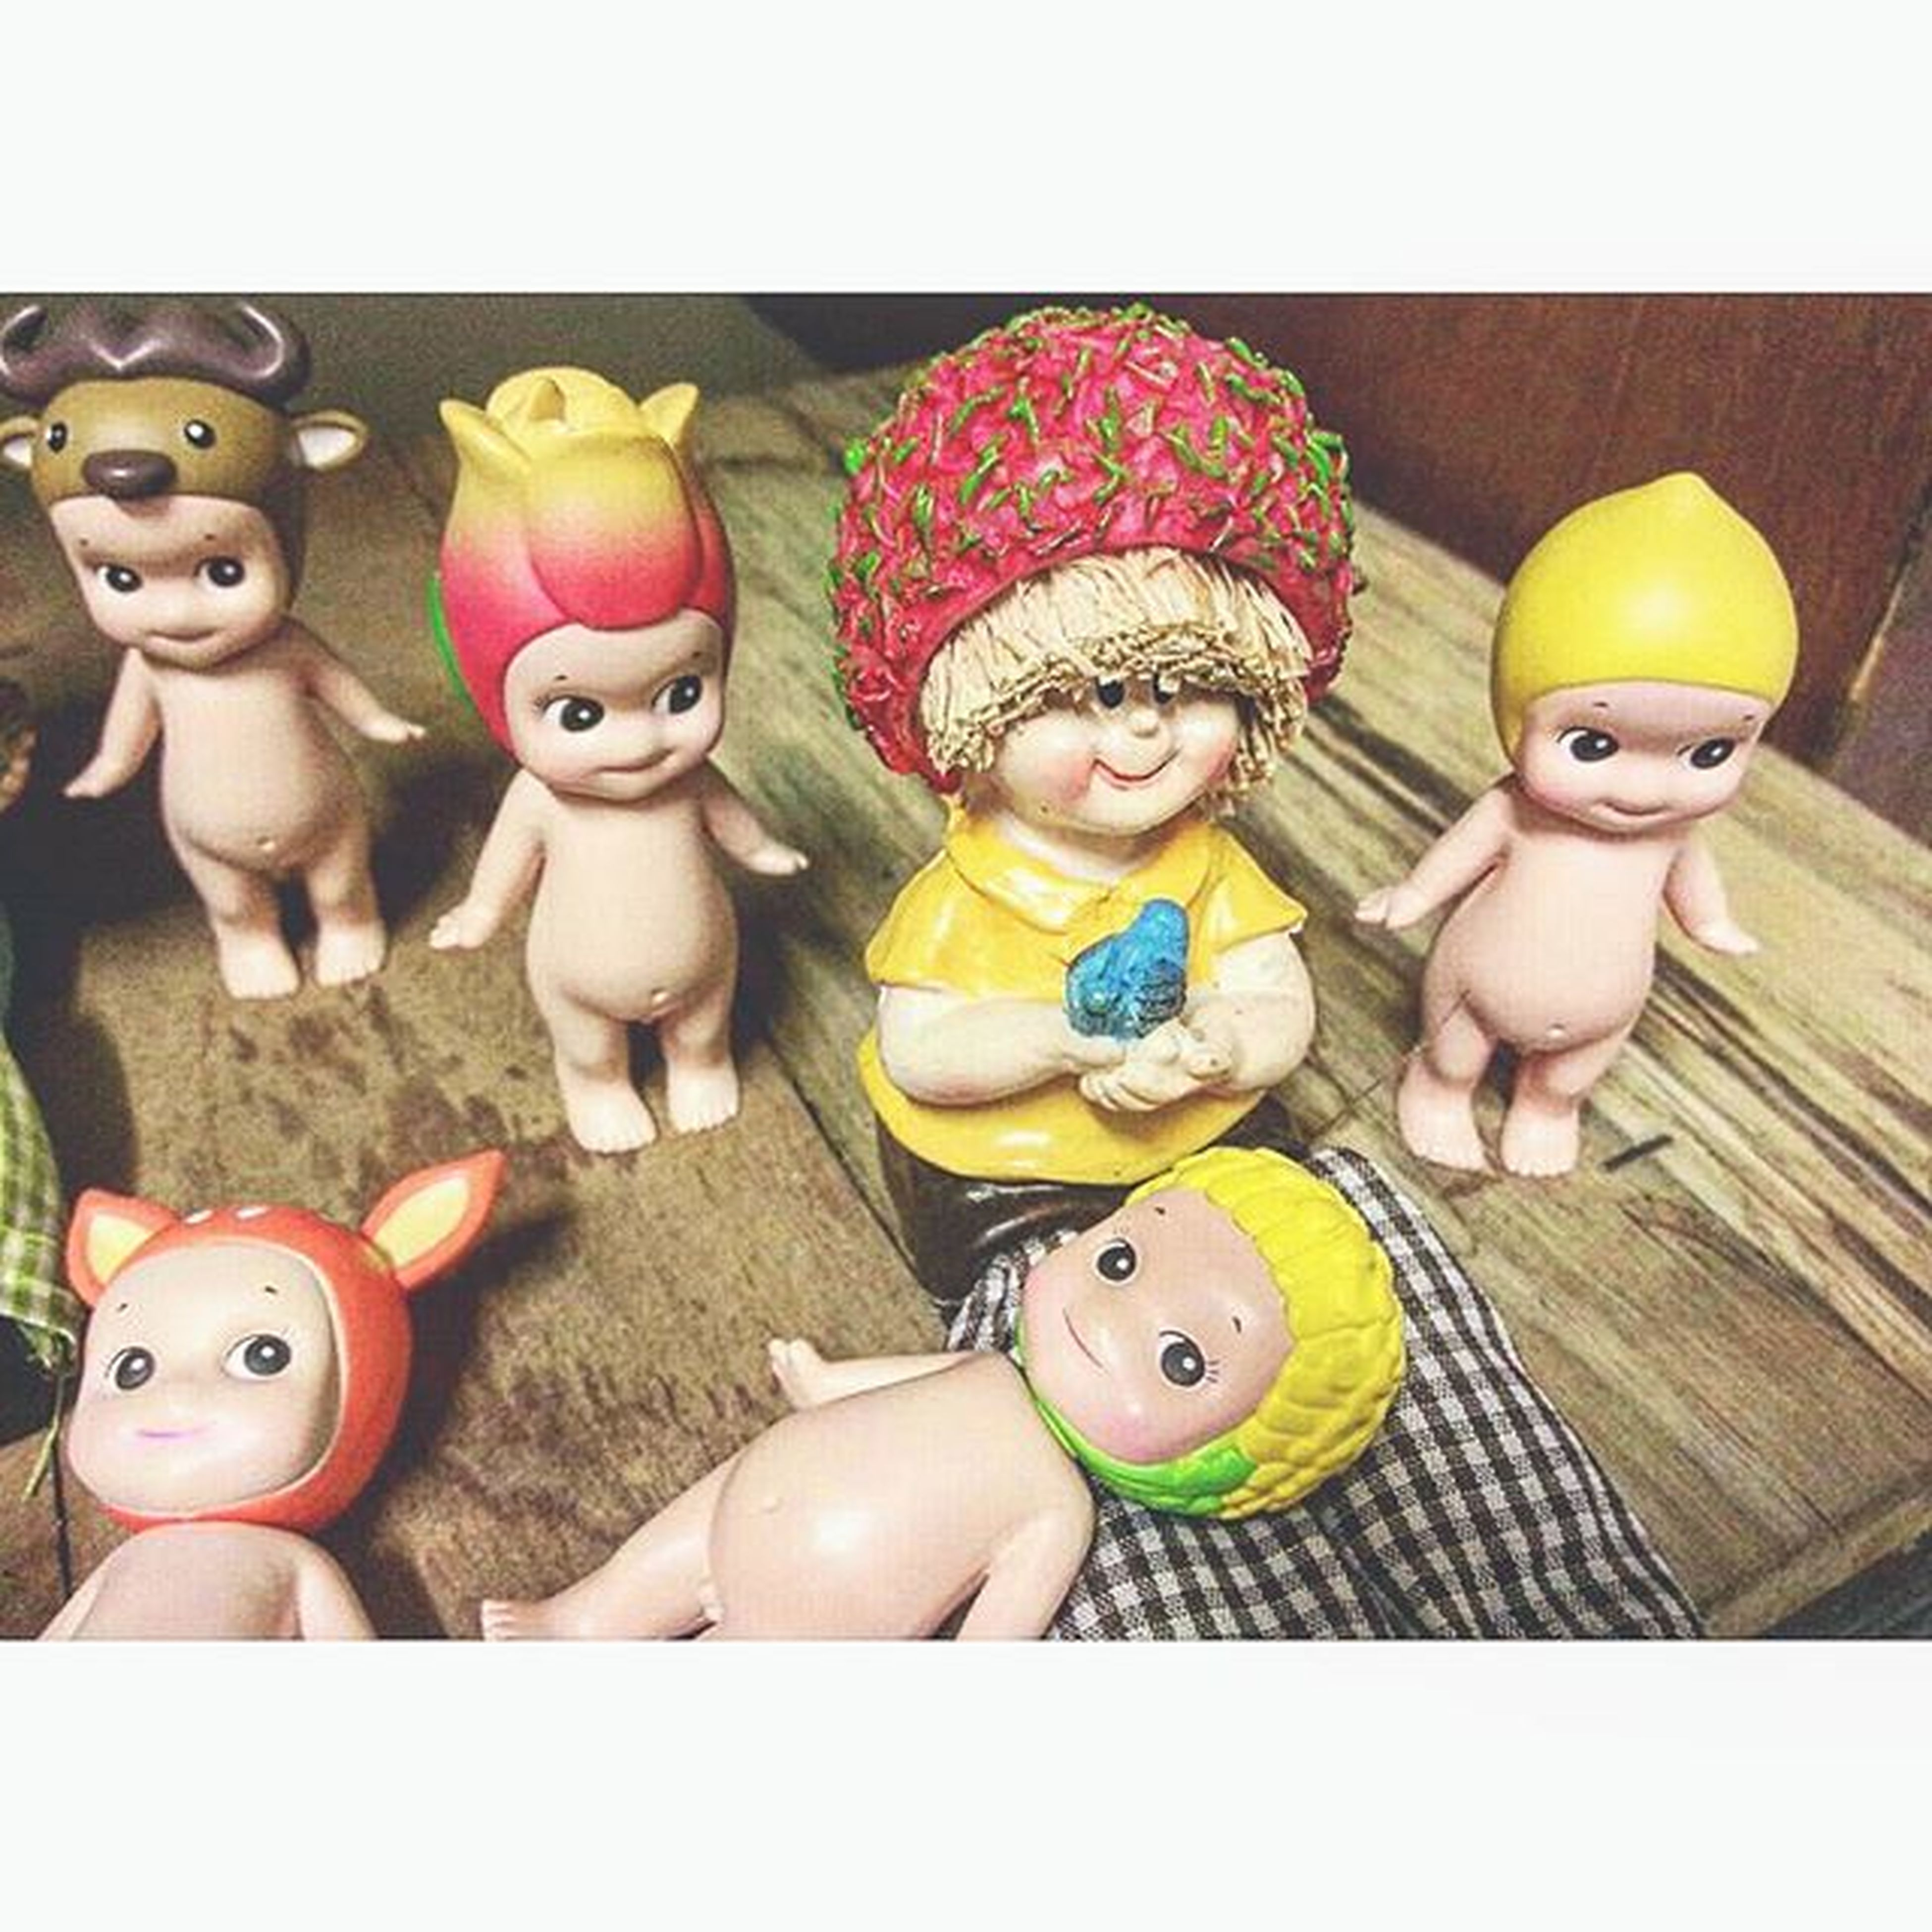 human representation, toy, childhood, creativity, art, art and craft, animal representation, multi colored, transfer print, indoors, stuffed toy, variation, auto post production filter, doll, figurine, teddy bear, celebration, large group of objects